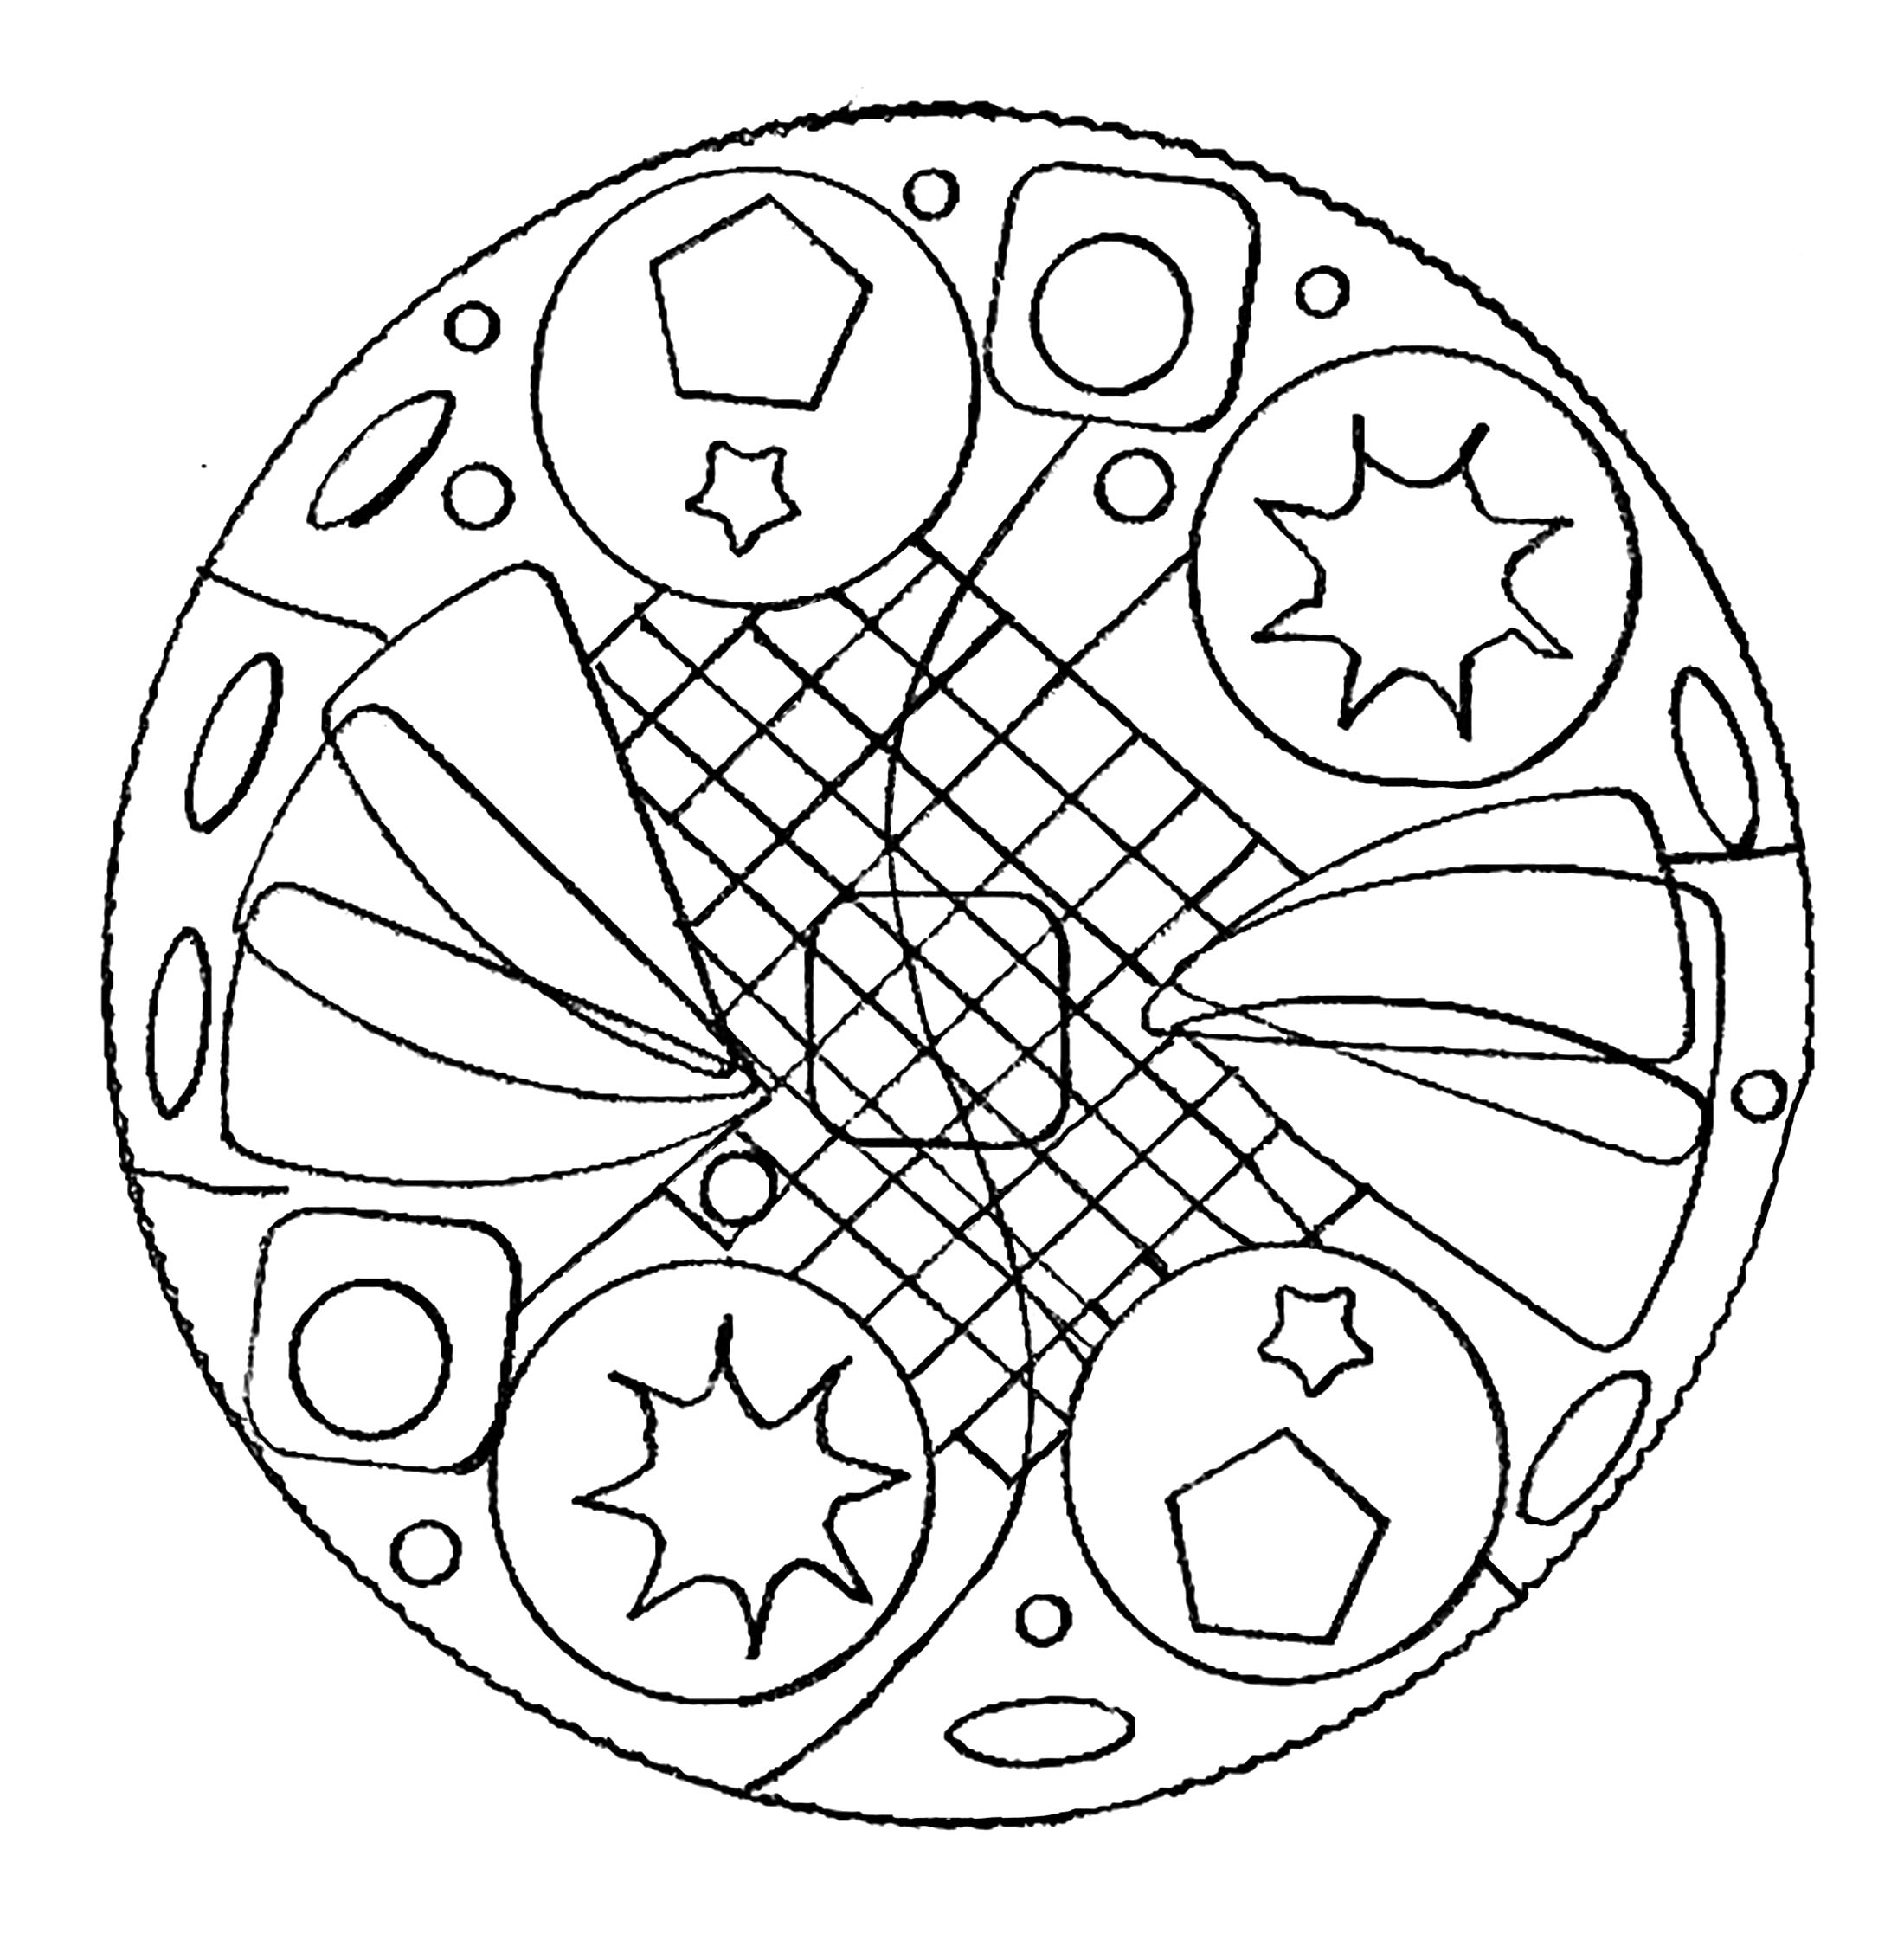 simple mandalas to color unique and simple mandala coloring page zen anti to color simple mandalas